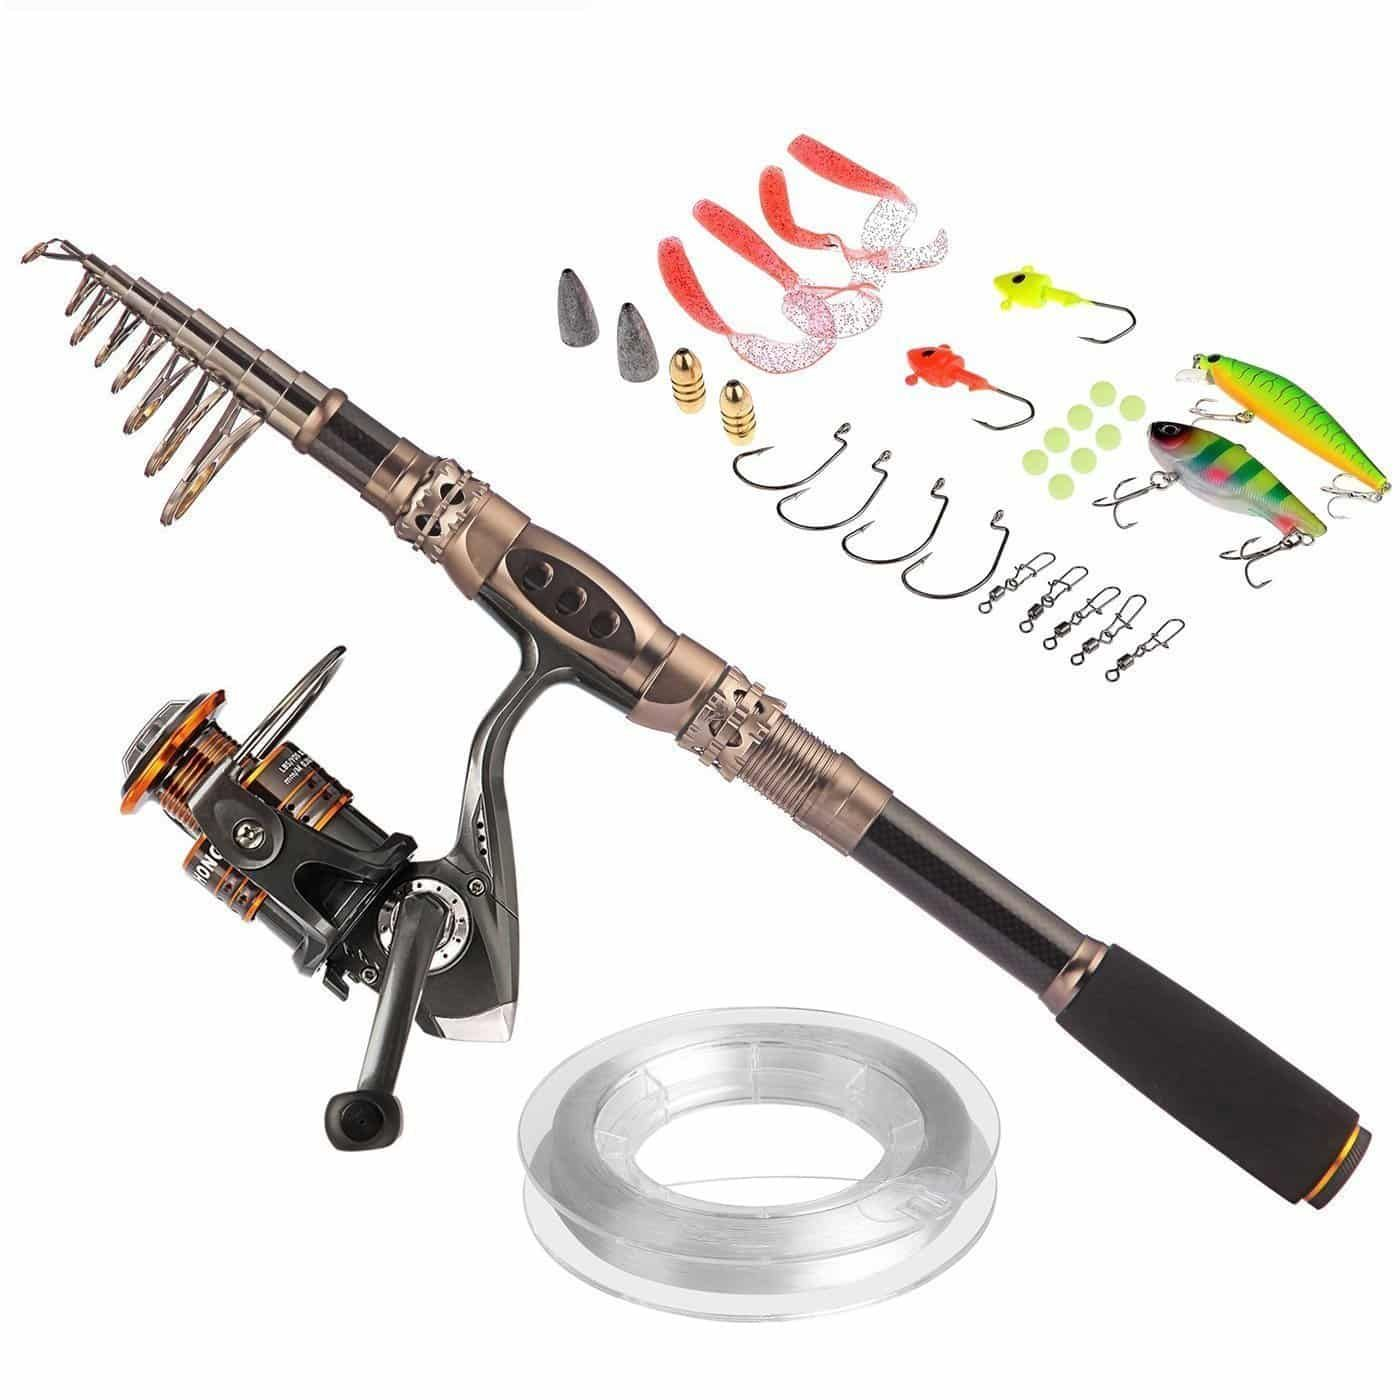 Image result for PLUSINNO Fishing Rod and Reel Combos Carbon Fiber Telescopic Fishing Rod with Reel Combo Sea Saltwater Freshwater Kit Fishing Rod Kit